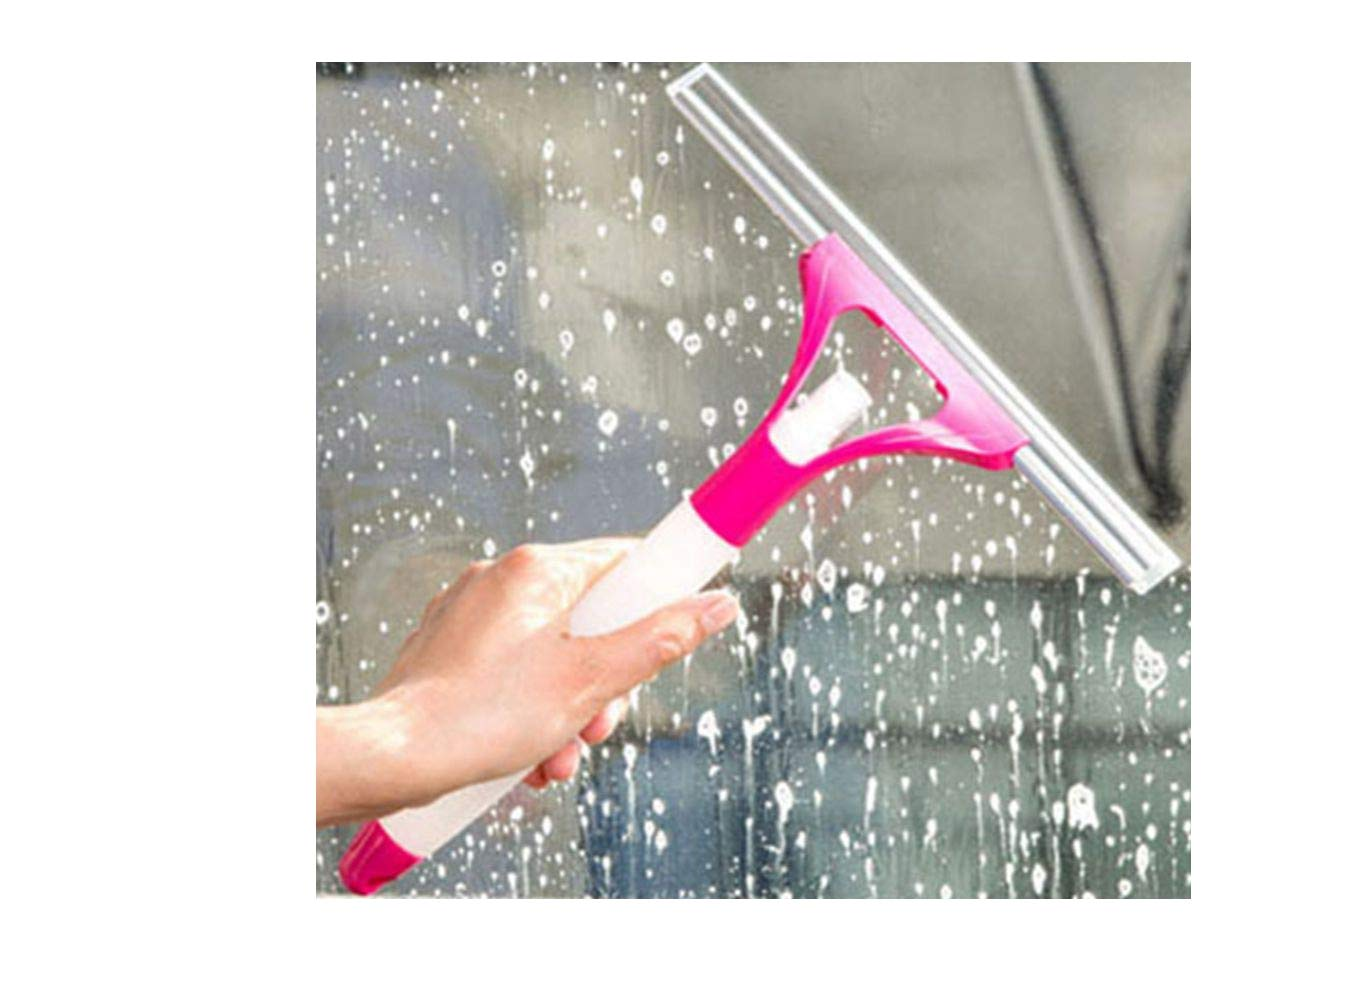 DADA Window Squeegees with Spray Bottle, Glass Cleaning Wiper Rubber Blade Shower Screen Washer (Random Color) Gadgets